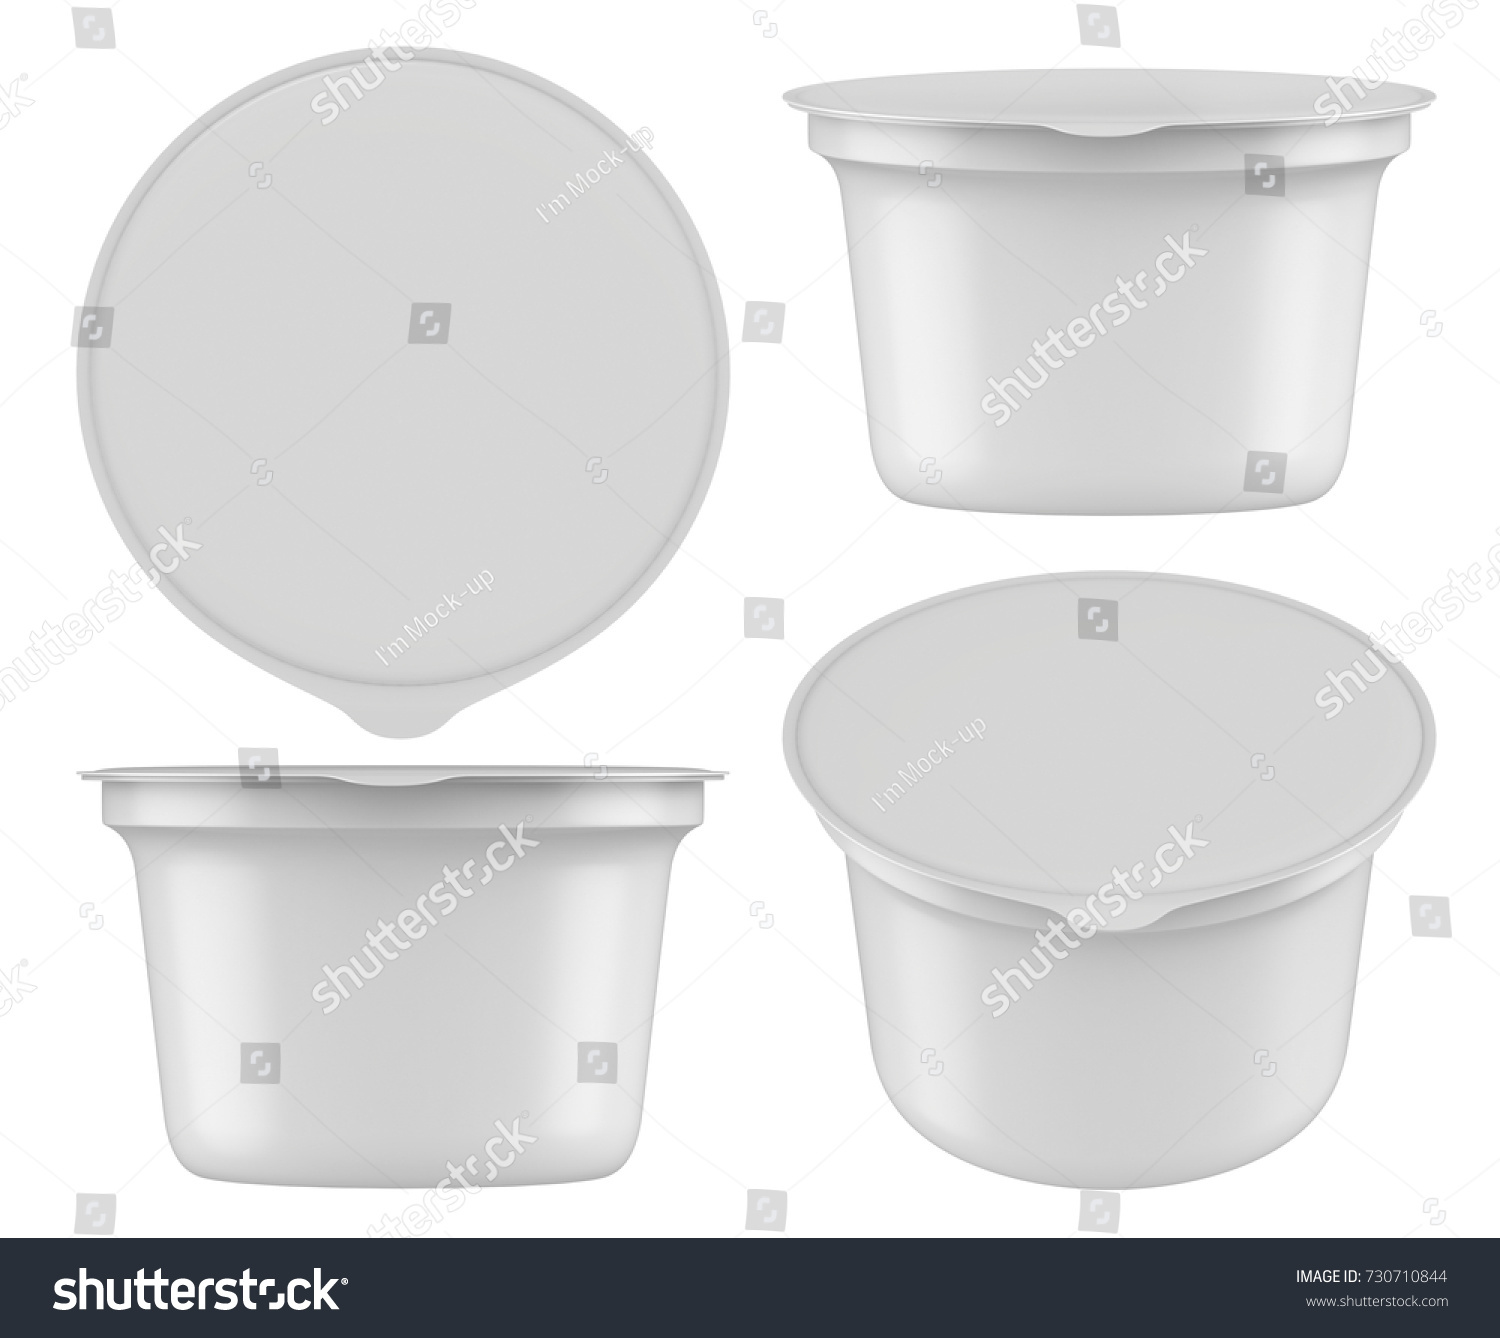 tamper cary tub oz white company evident hdpe resistant the storage container plastic